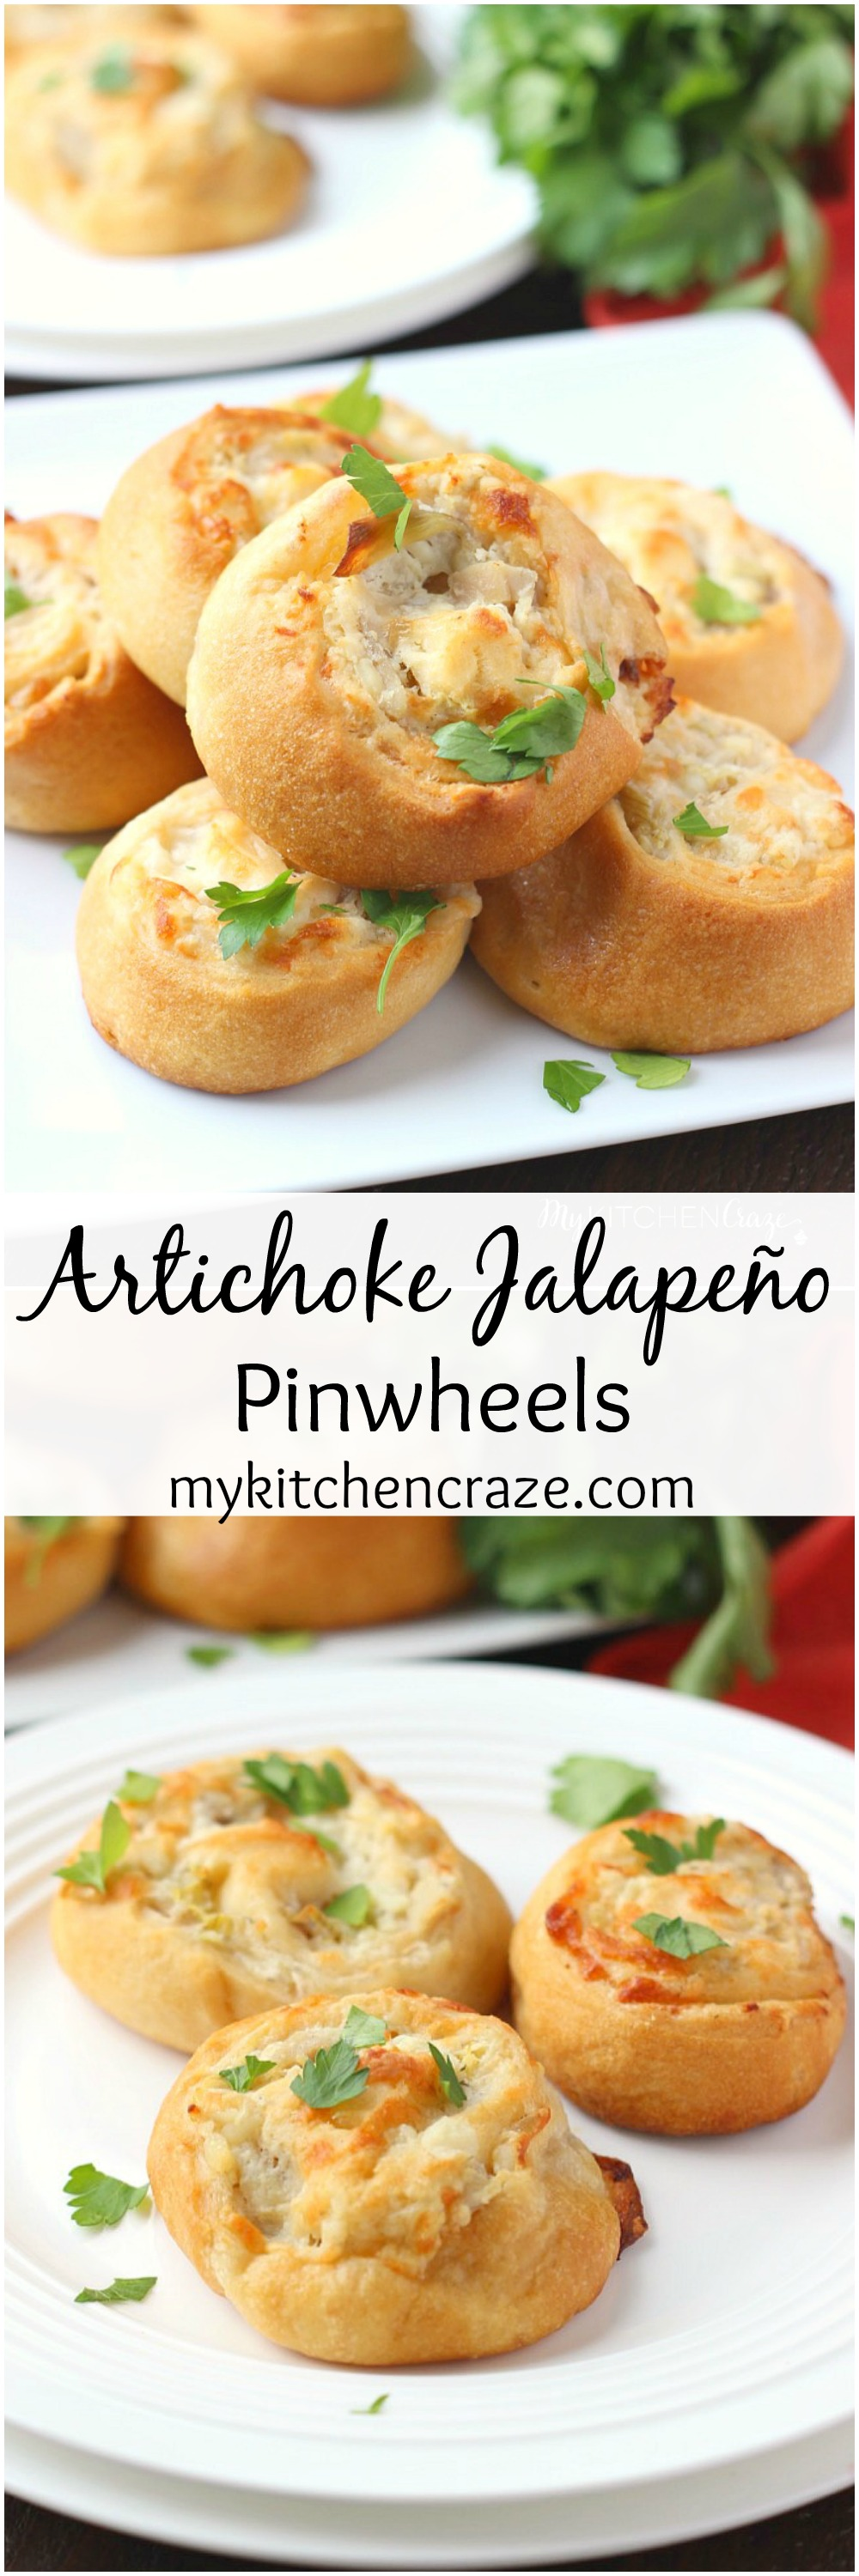 Artichoke Jalapeño Pinwheels ~ mykitchencraze.com ~ Perfect appetizer or snack for any occasion. Crescent dough loaded with chicken, cheese and La Terra Fina artichoke jalapeño spread. @LaTerraFina